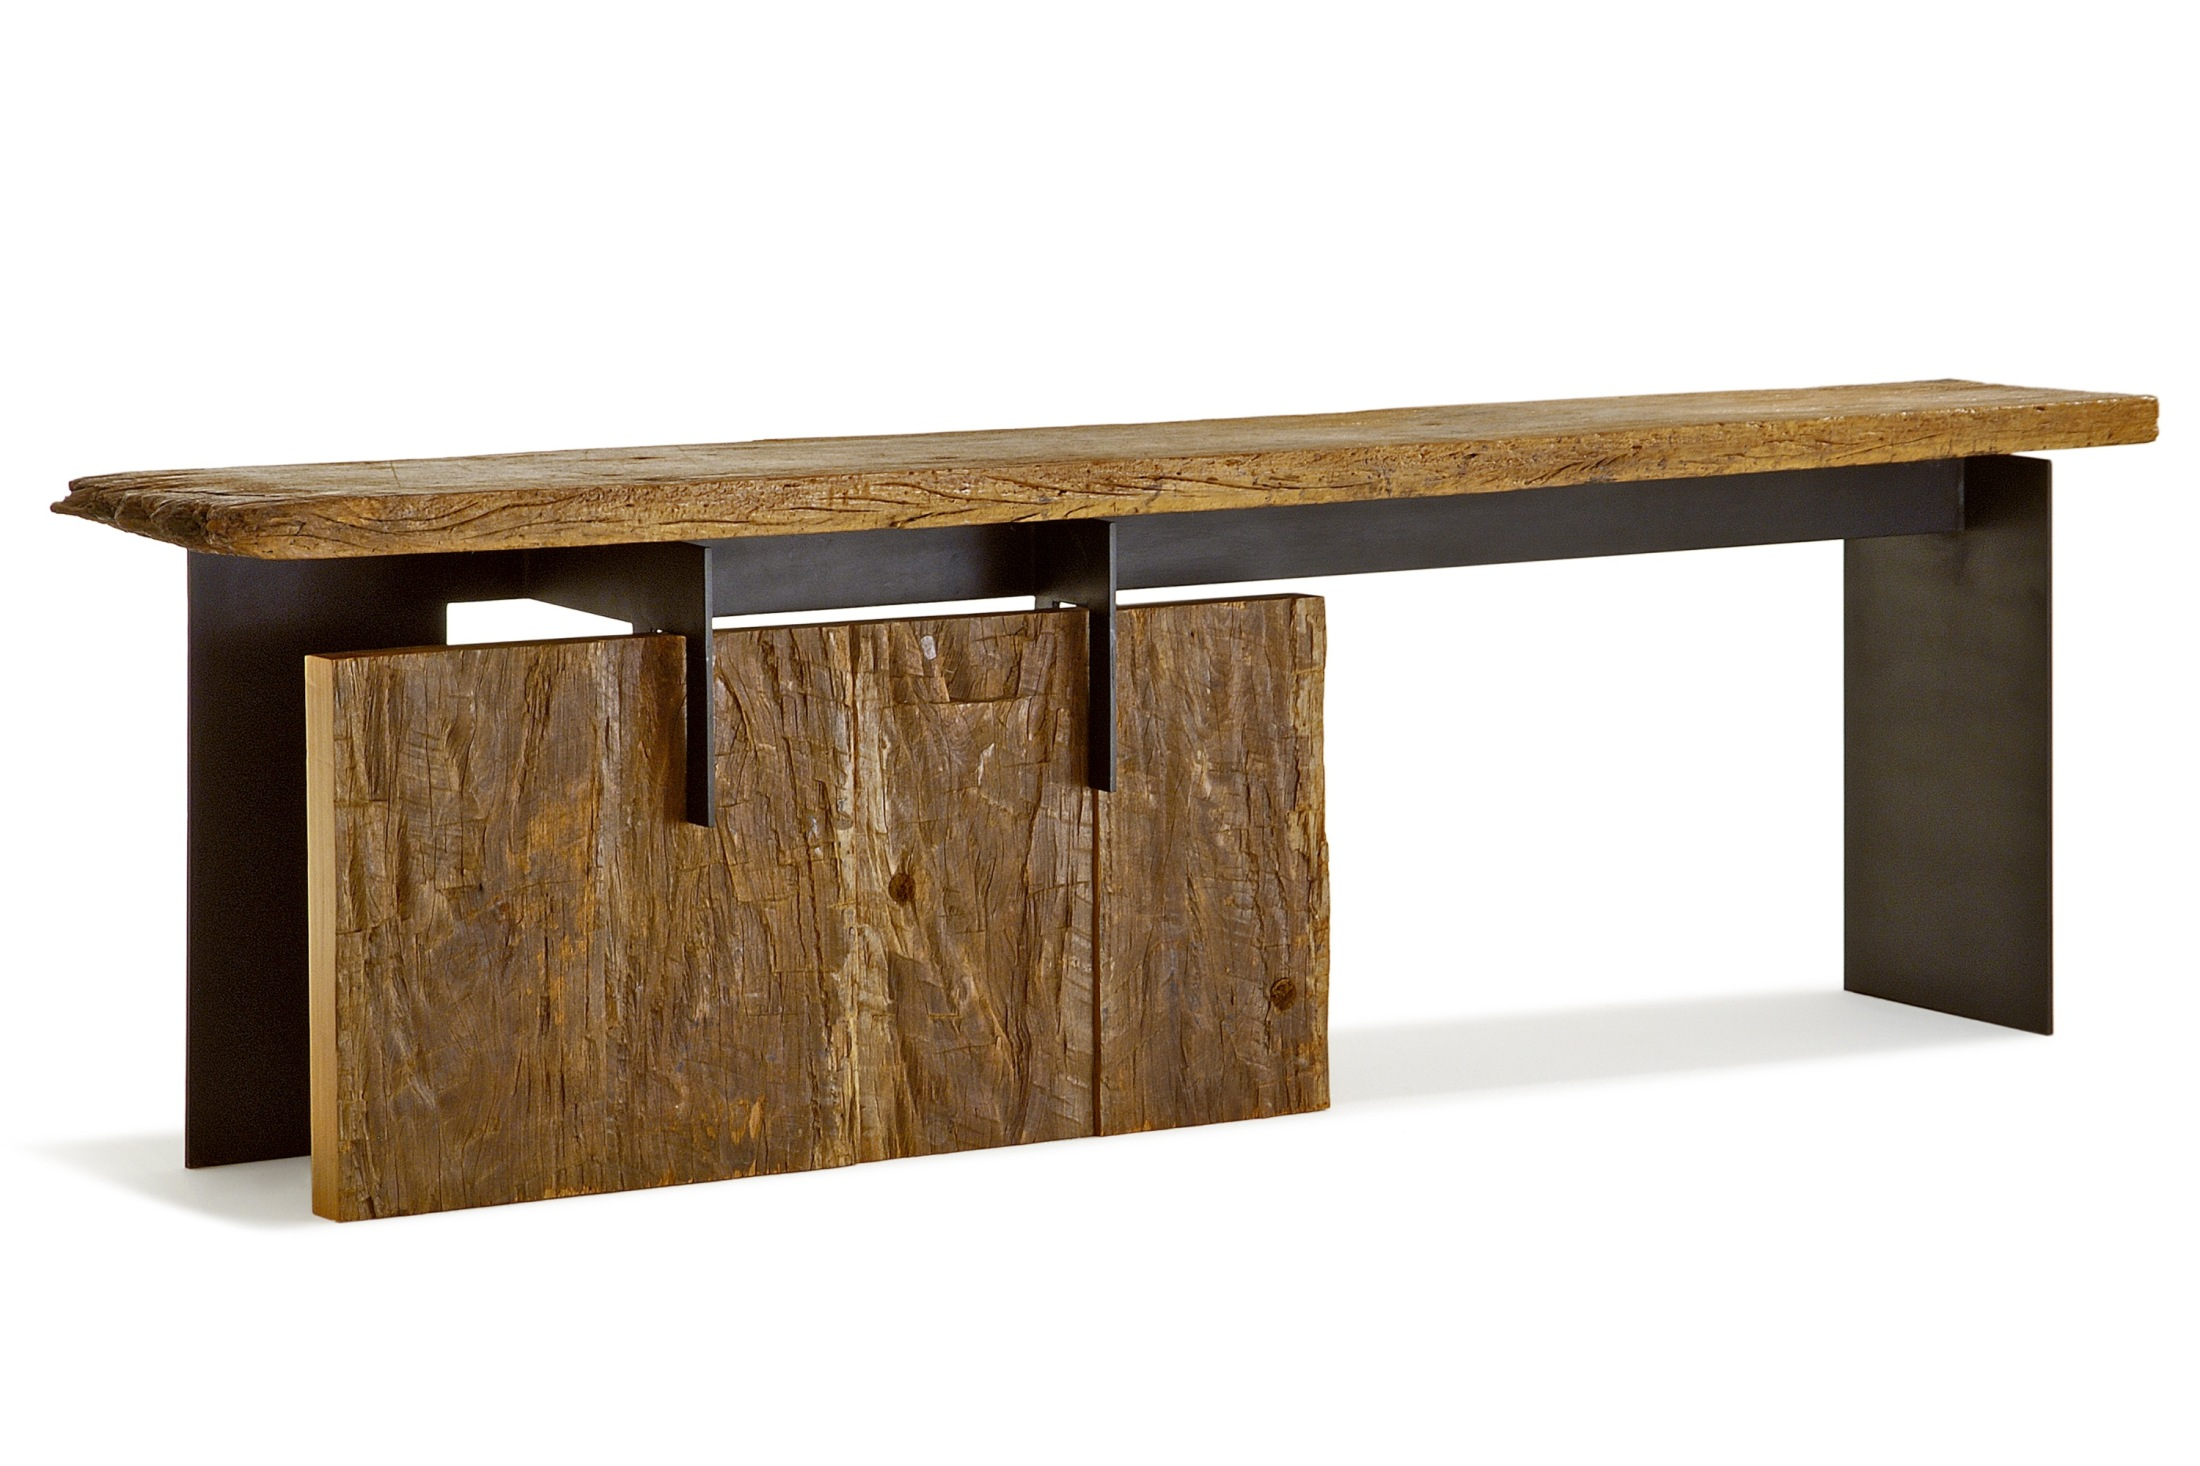 Peroba Wood Weathered Metal Console Table 83 Inches Long